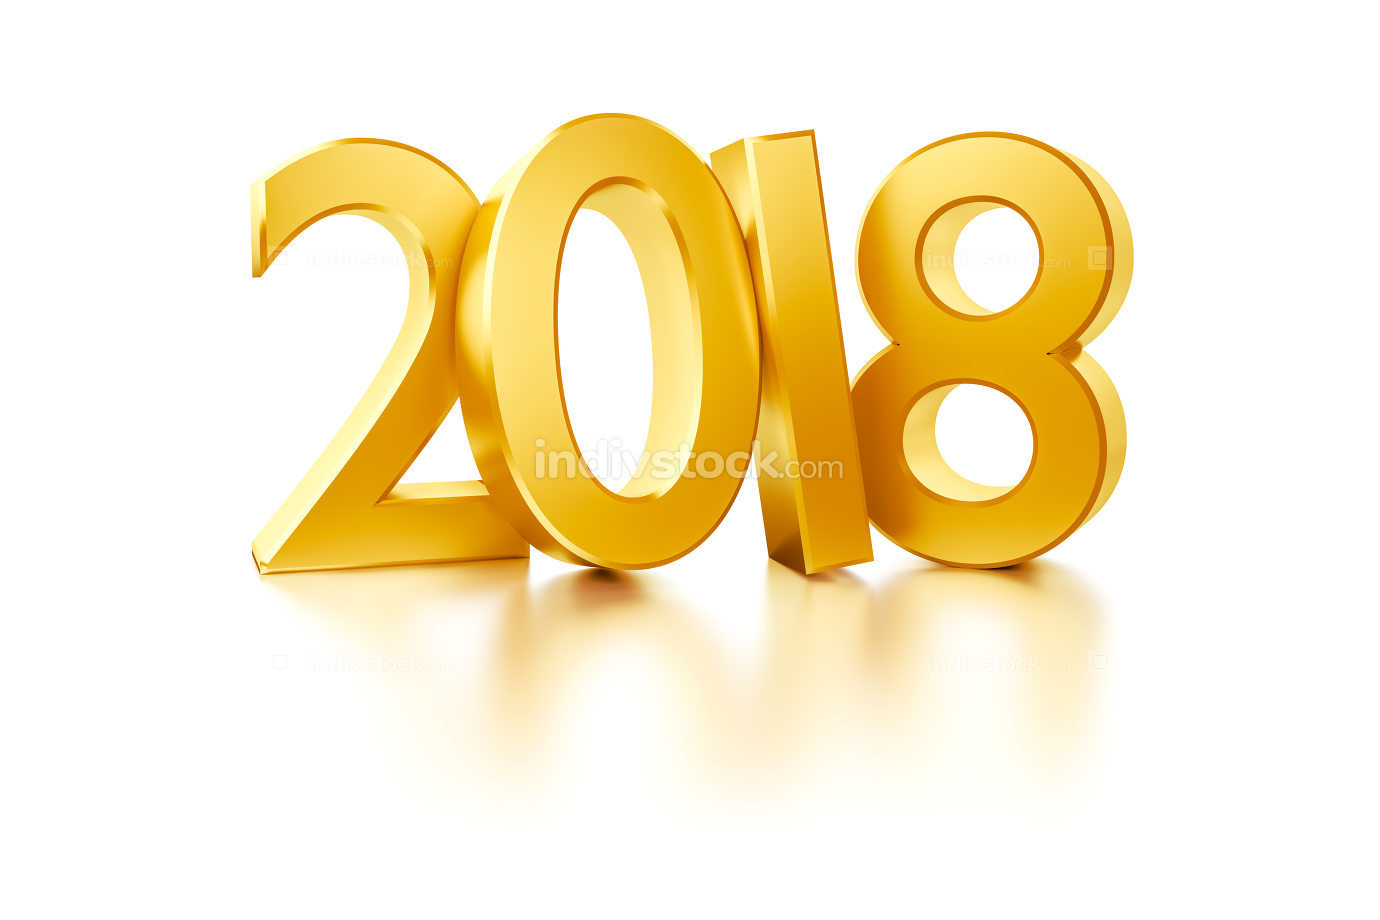 the golden number 2018 for new year holidays